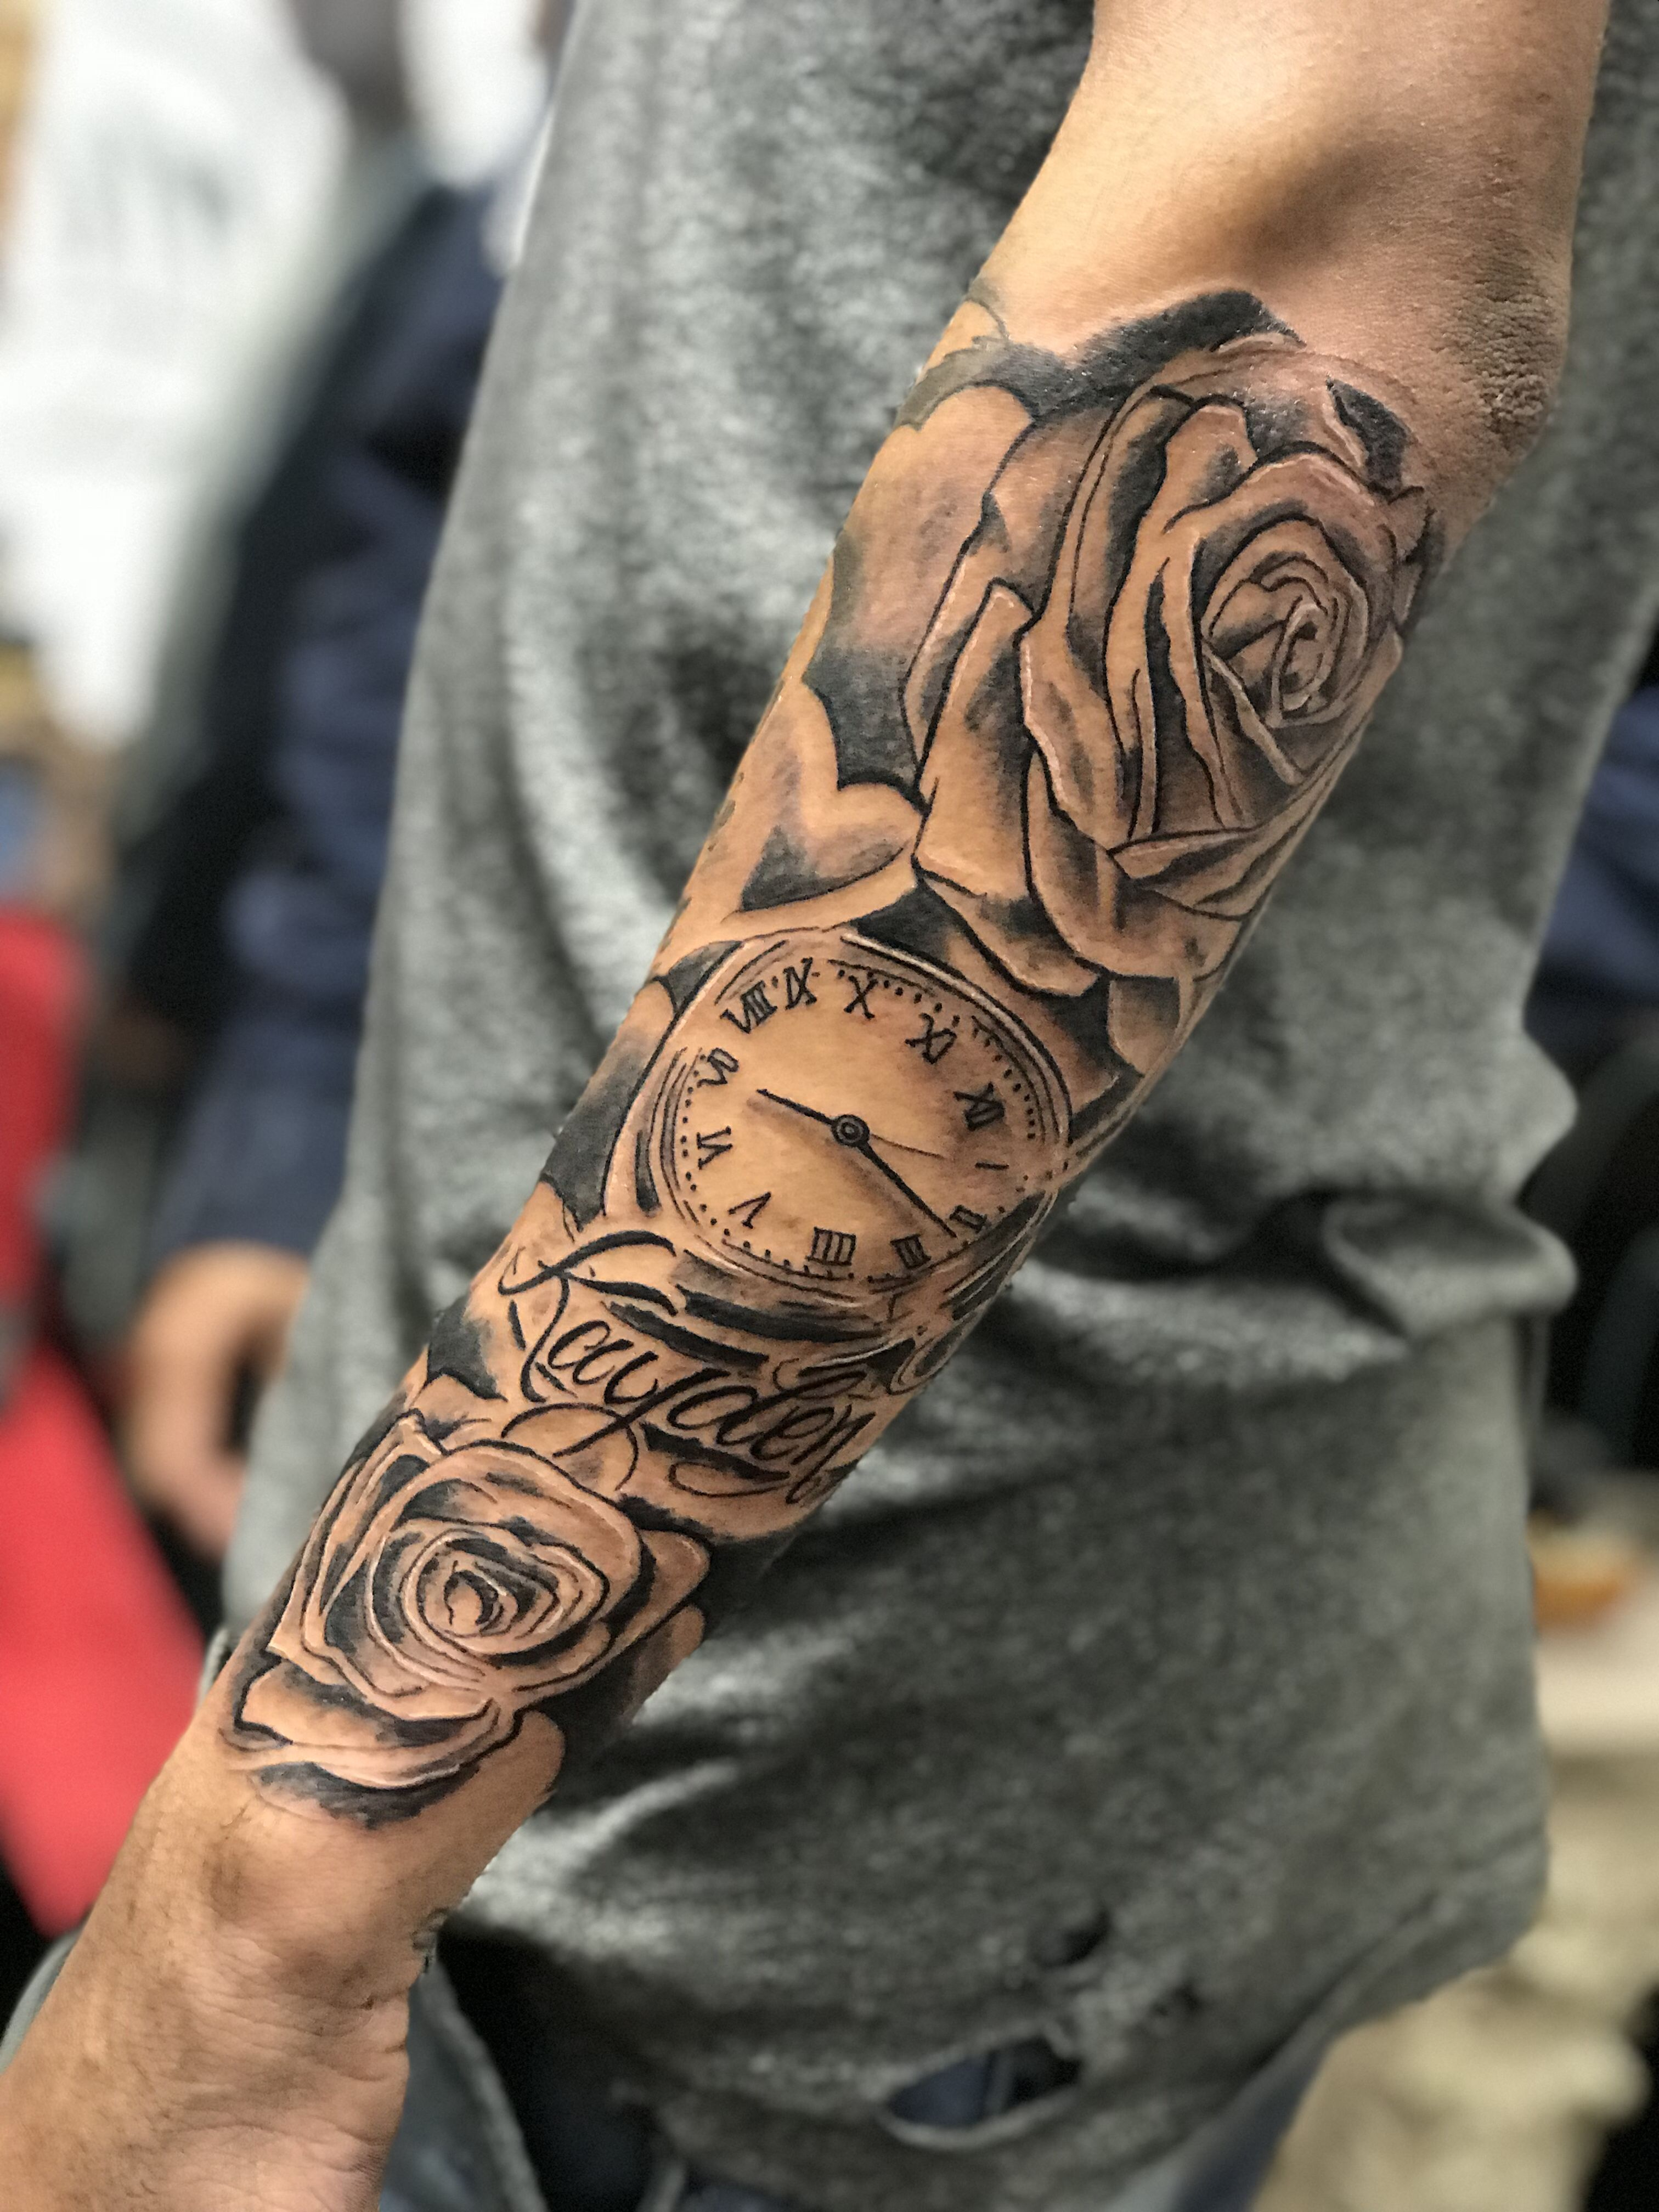 Tattoo Done By Rokmatic Ink Forearm Tattoo Men Sleeve Tattoos